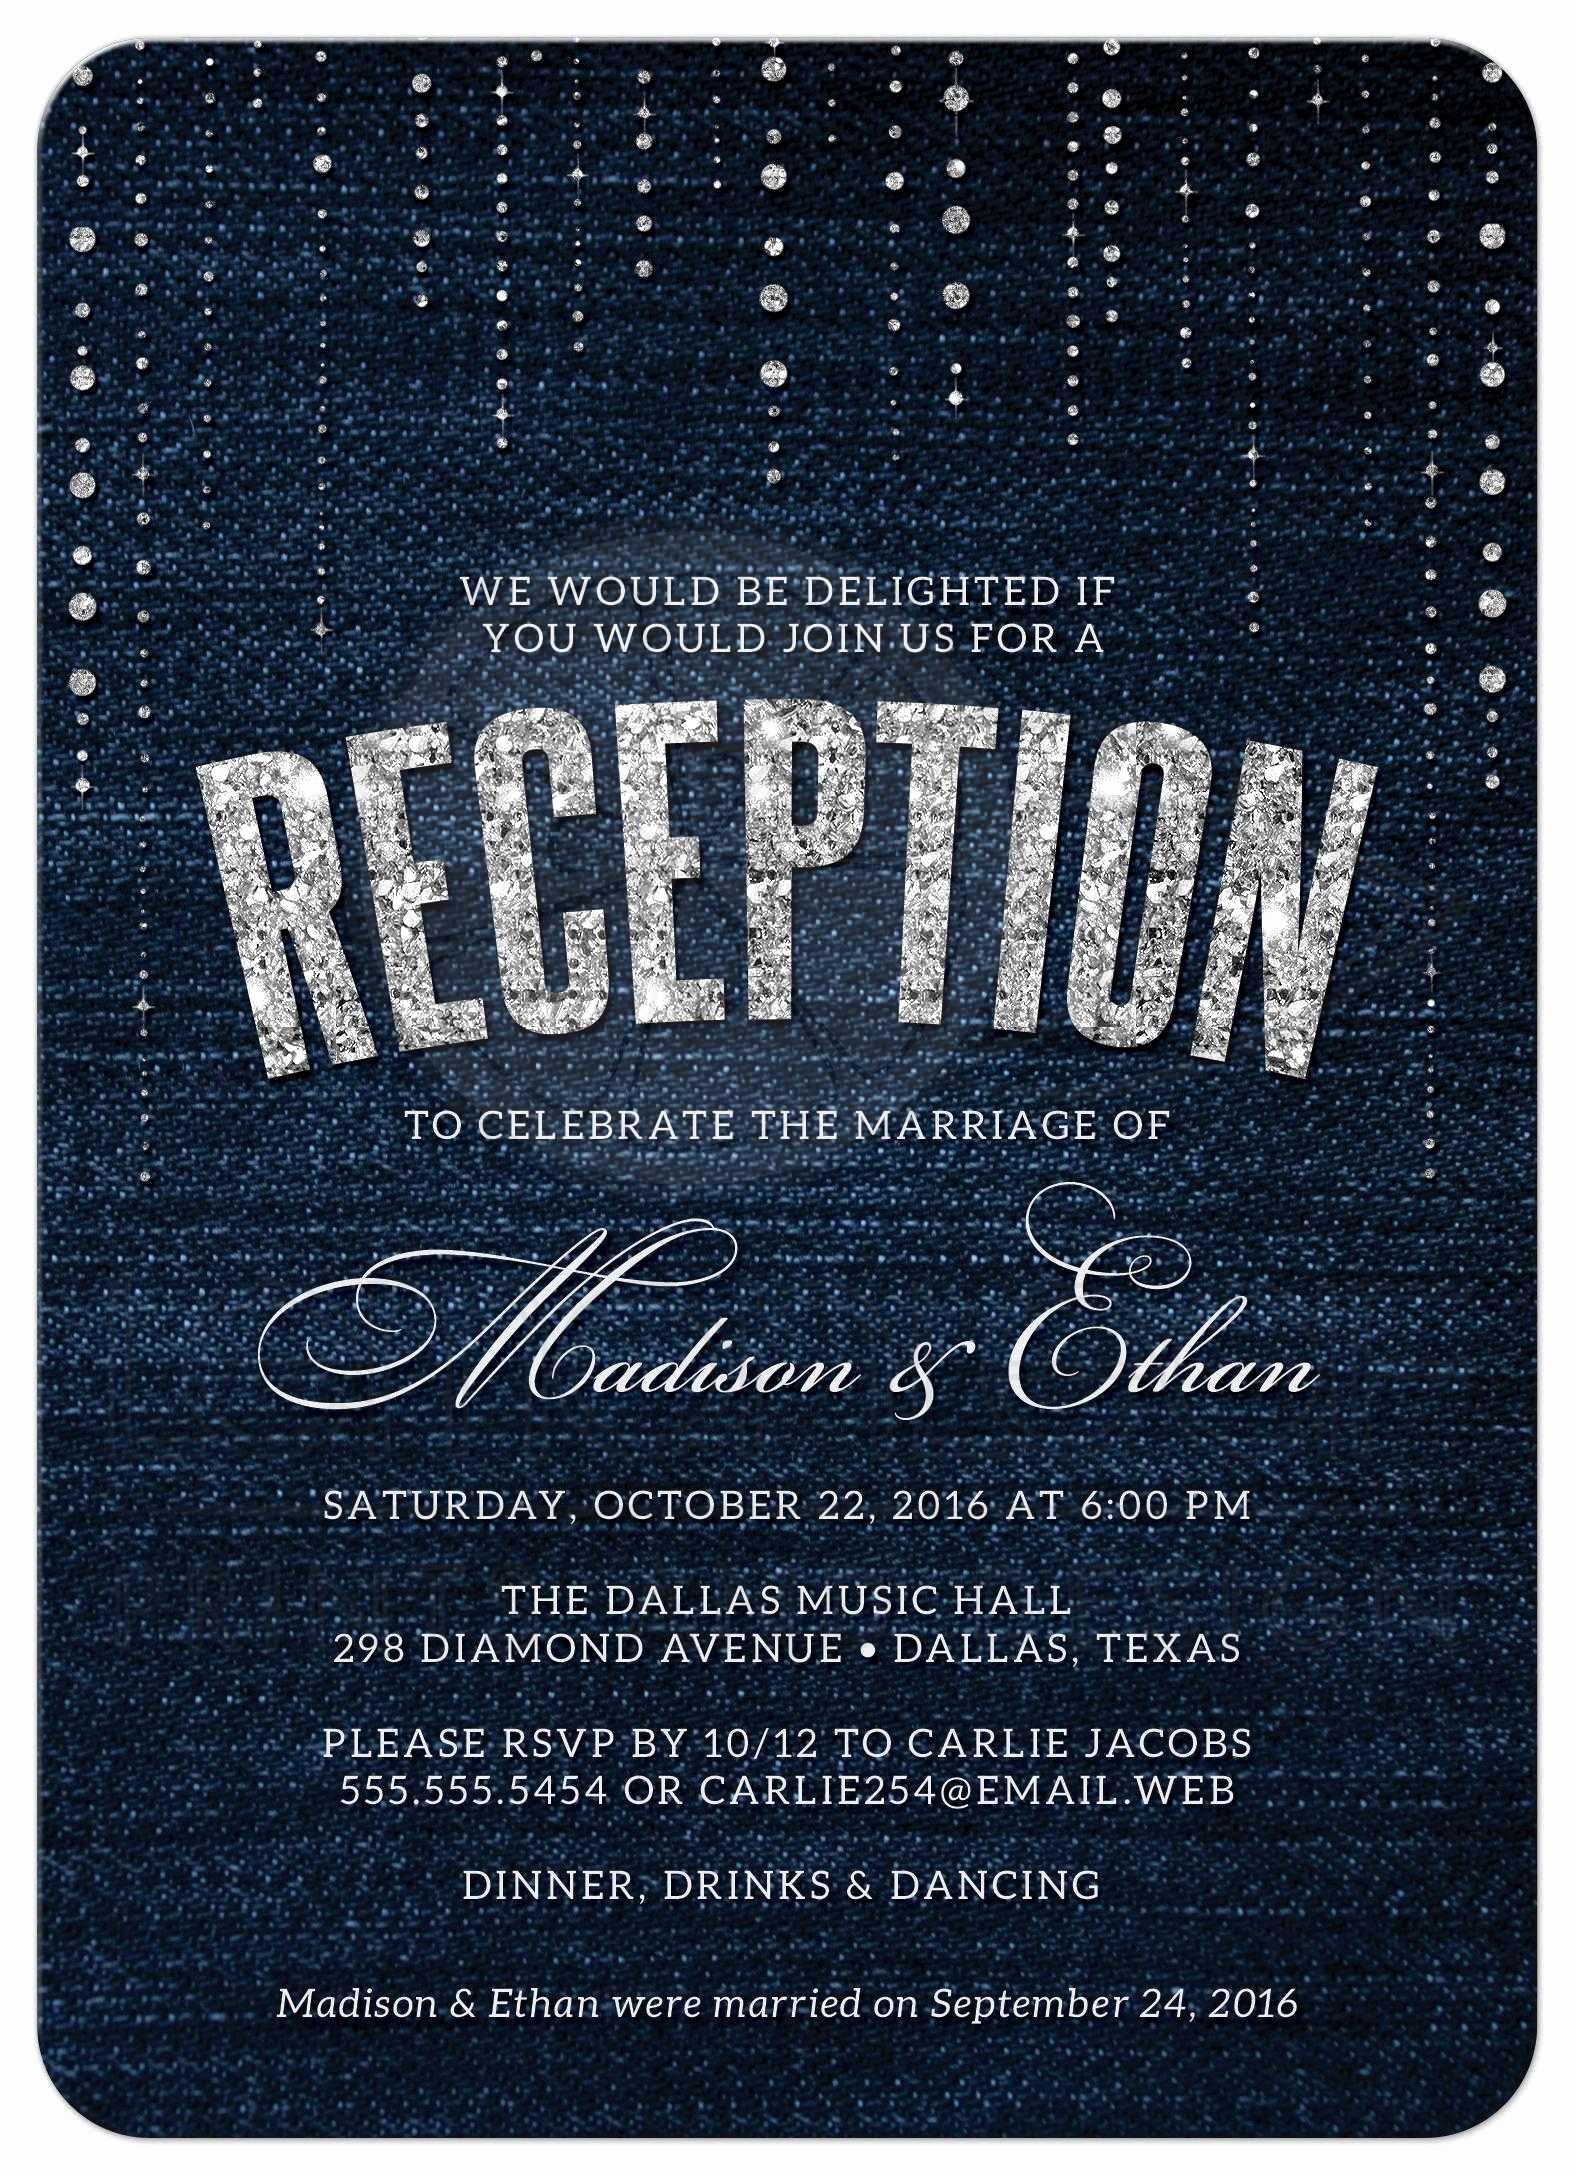 Wedding Reception Only Invitation Wording Elegant Post Wedding Reception Ly Invitations Denim & Diamonds